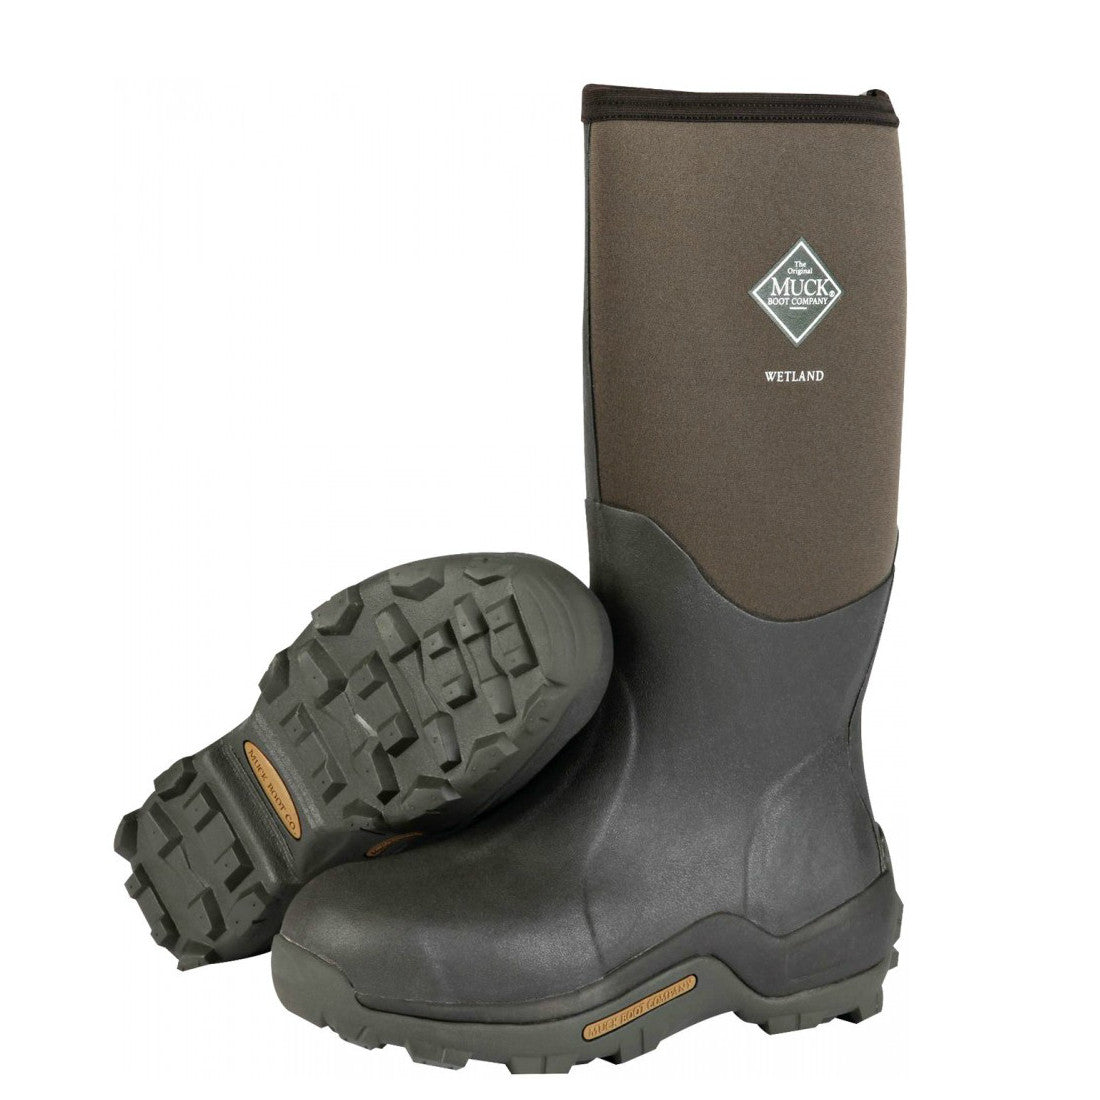 c8de8fa7db348 Muck Boots Wetland Premium Field Boot - Bark WET-998K - ShoeShackOnline